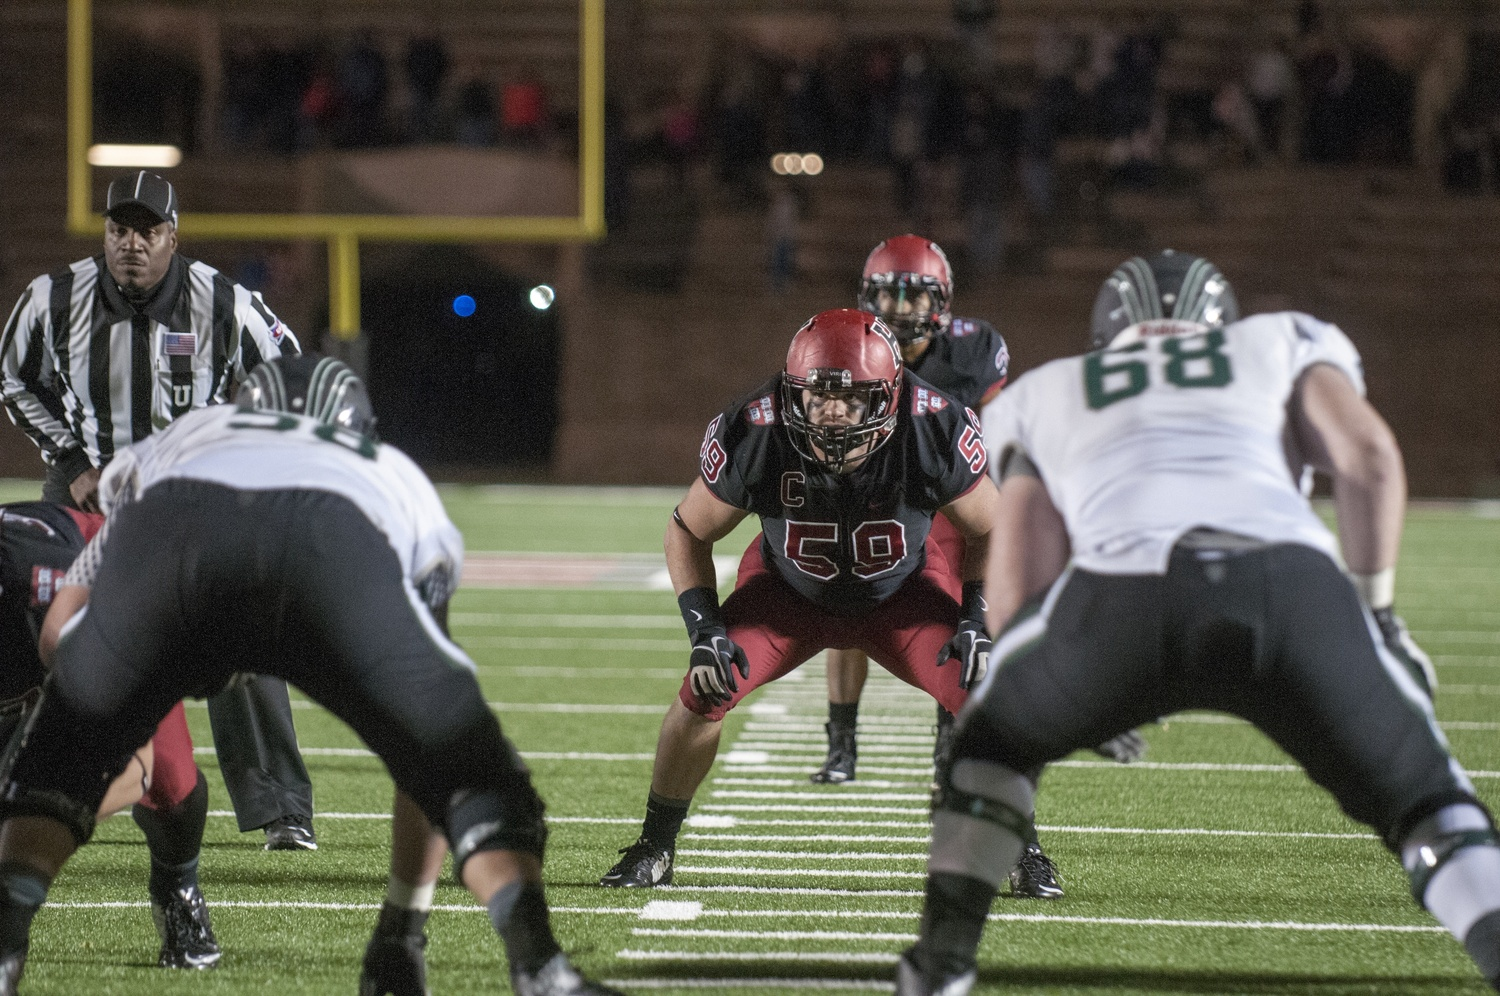 Captain Matt Koran's fumble recovery with under 3:00 remaining enabled the Crimson to take its first lead of the game in the final minute.